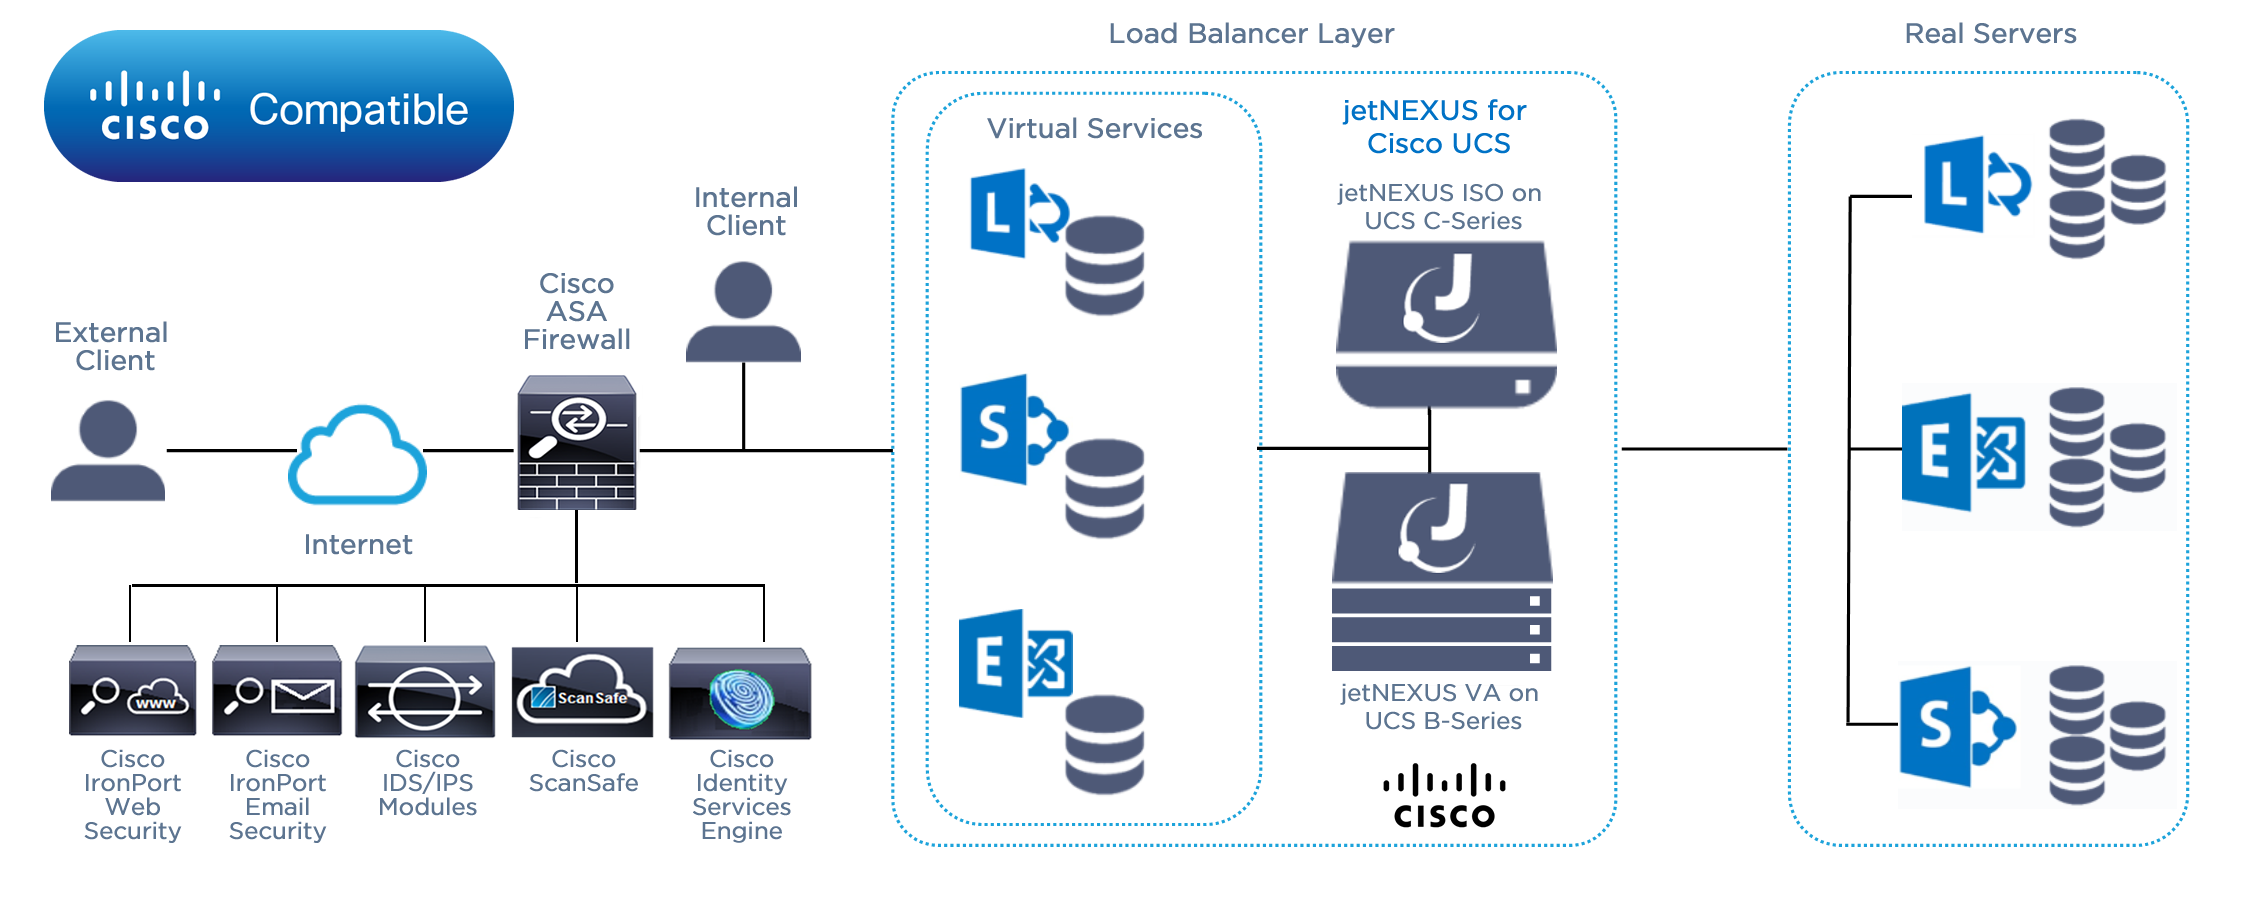 edgeNEXUS deployment of Cisco Load Balancer - Unified Computing System